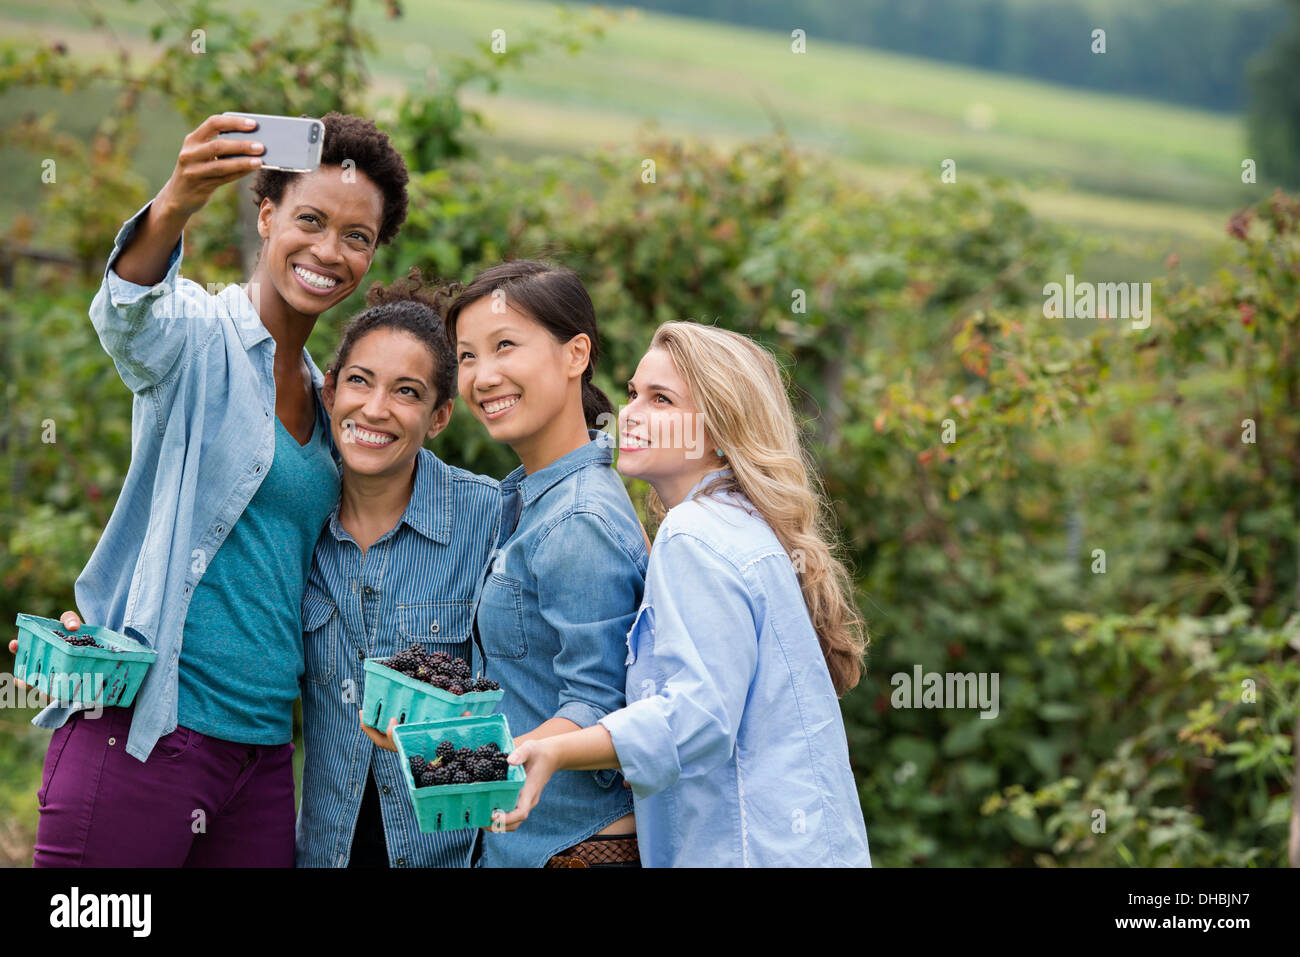 Picking blackberry fruits on an organic farm. Four women posing for a selfy photograph, taken using a smart phone. - Stock Image